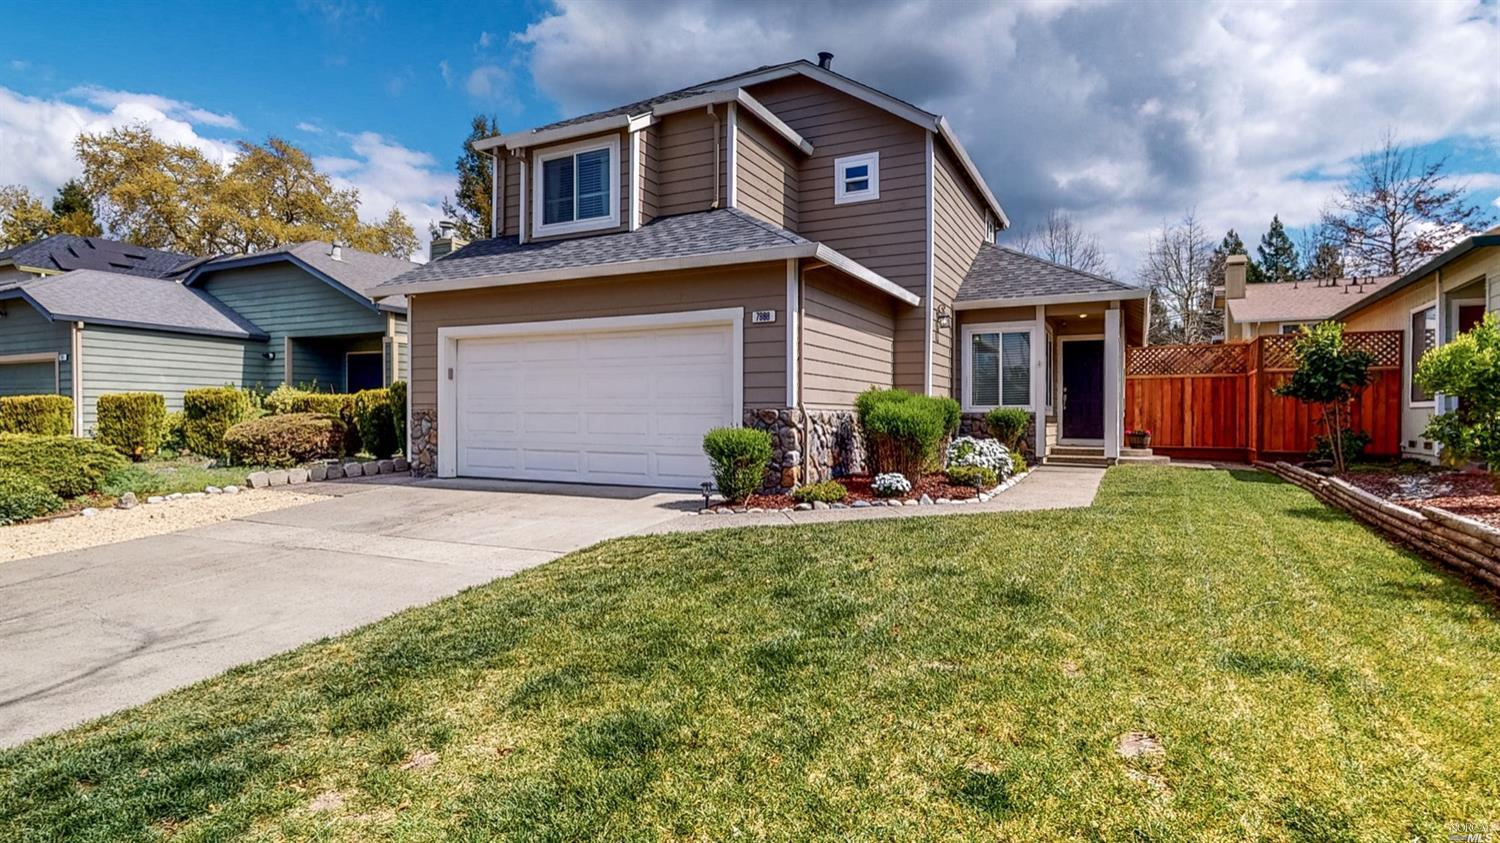 Well maintained 3 bedrooms, 2 1/2 bathroom home with 1,757 sq ft +/- of living space. The kitchen is